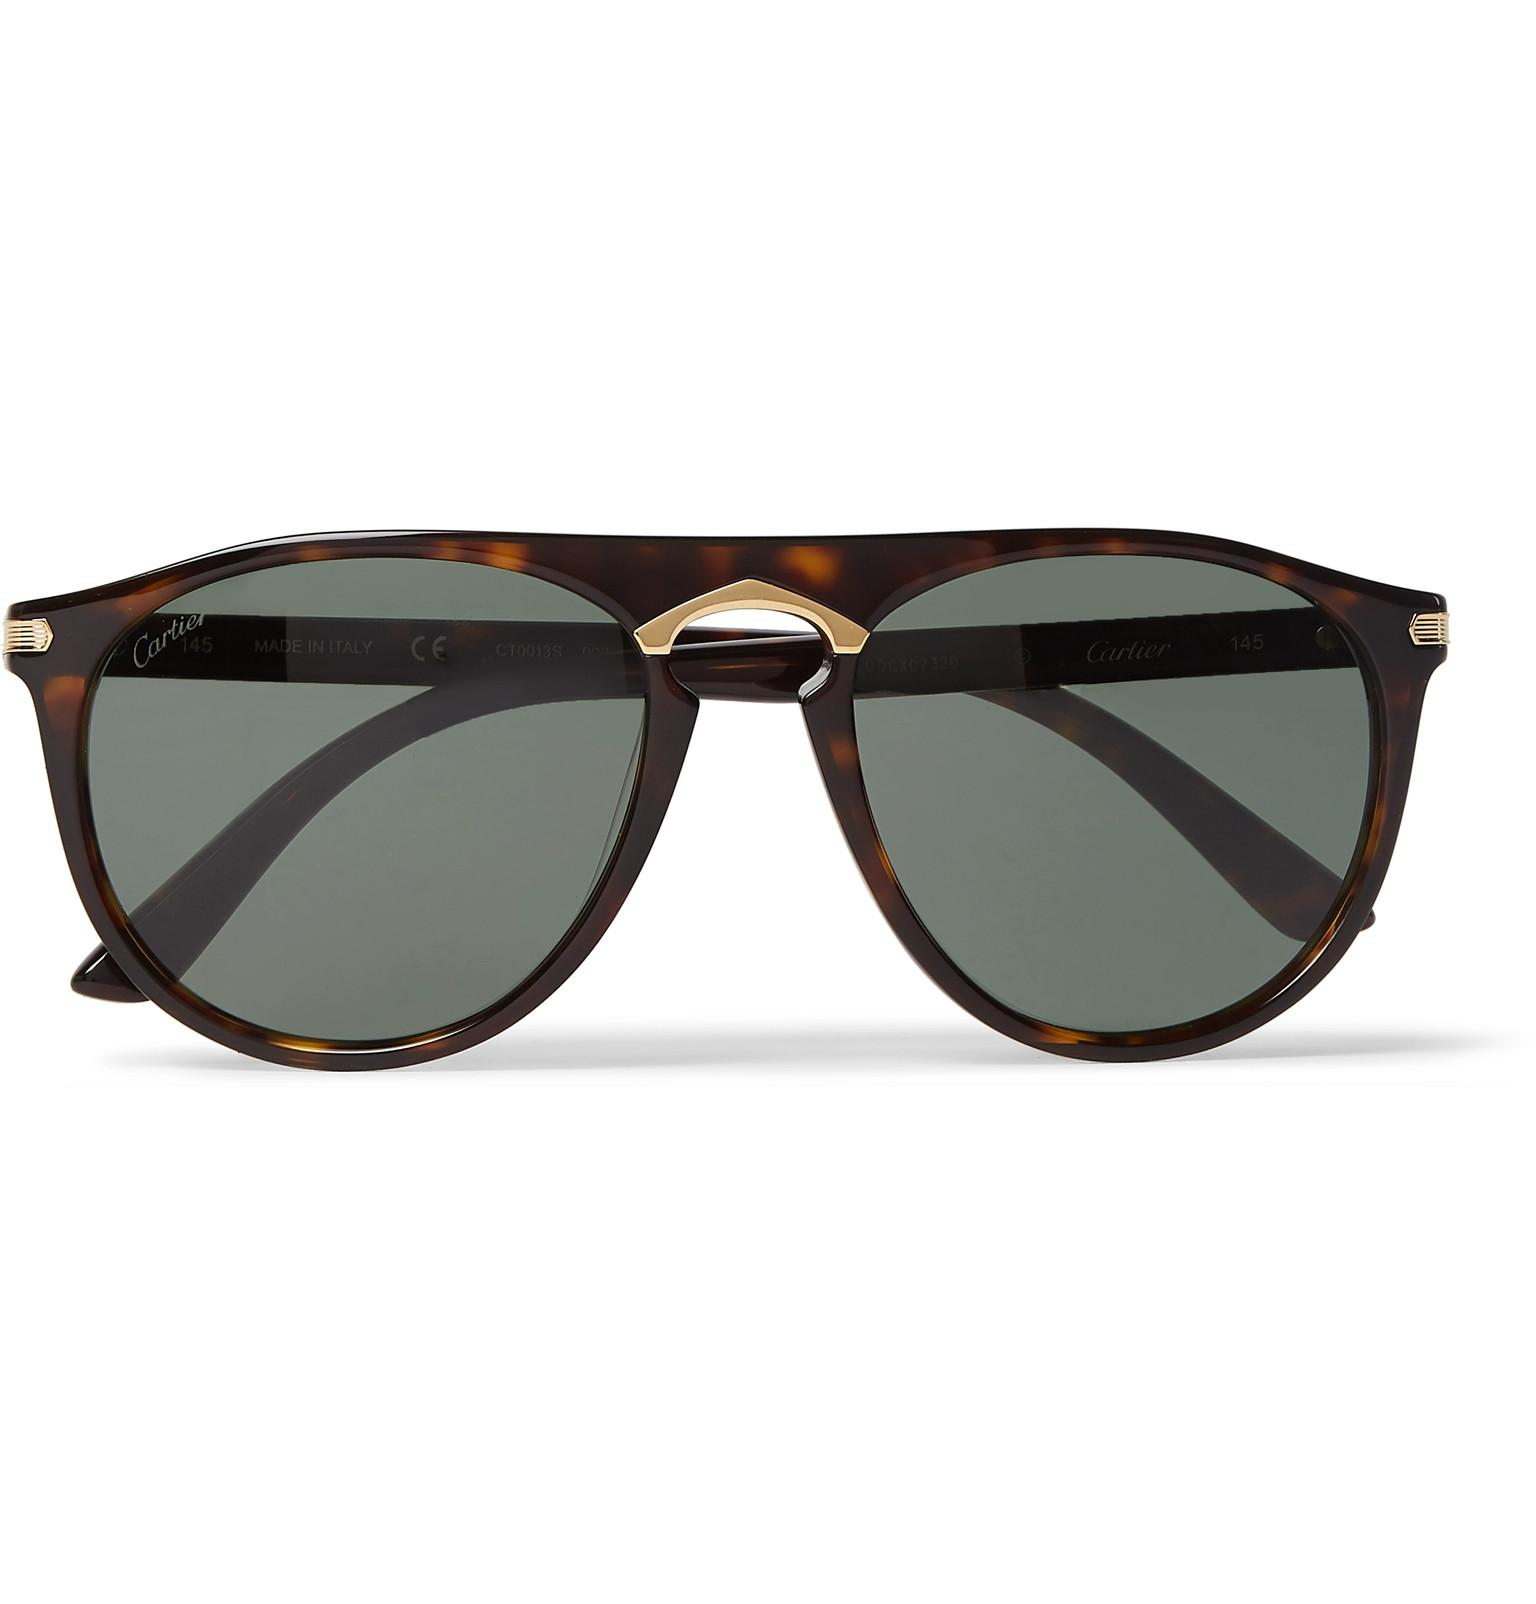 0239a88d6c Cartier. Men s Round-frame Tortoiseshell Acetate And Gold-tone Polarised  Sunglasses